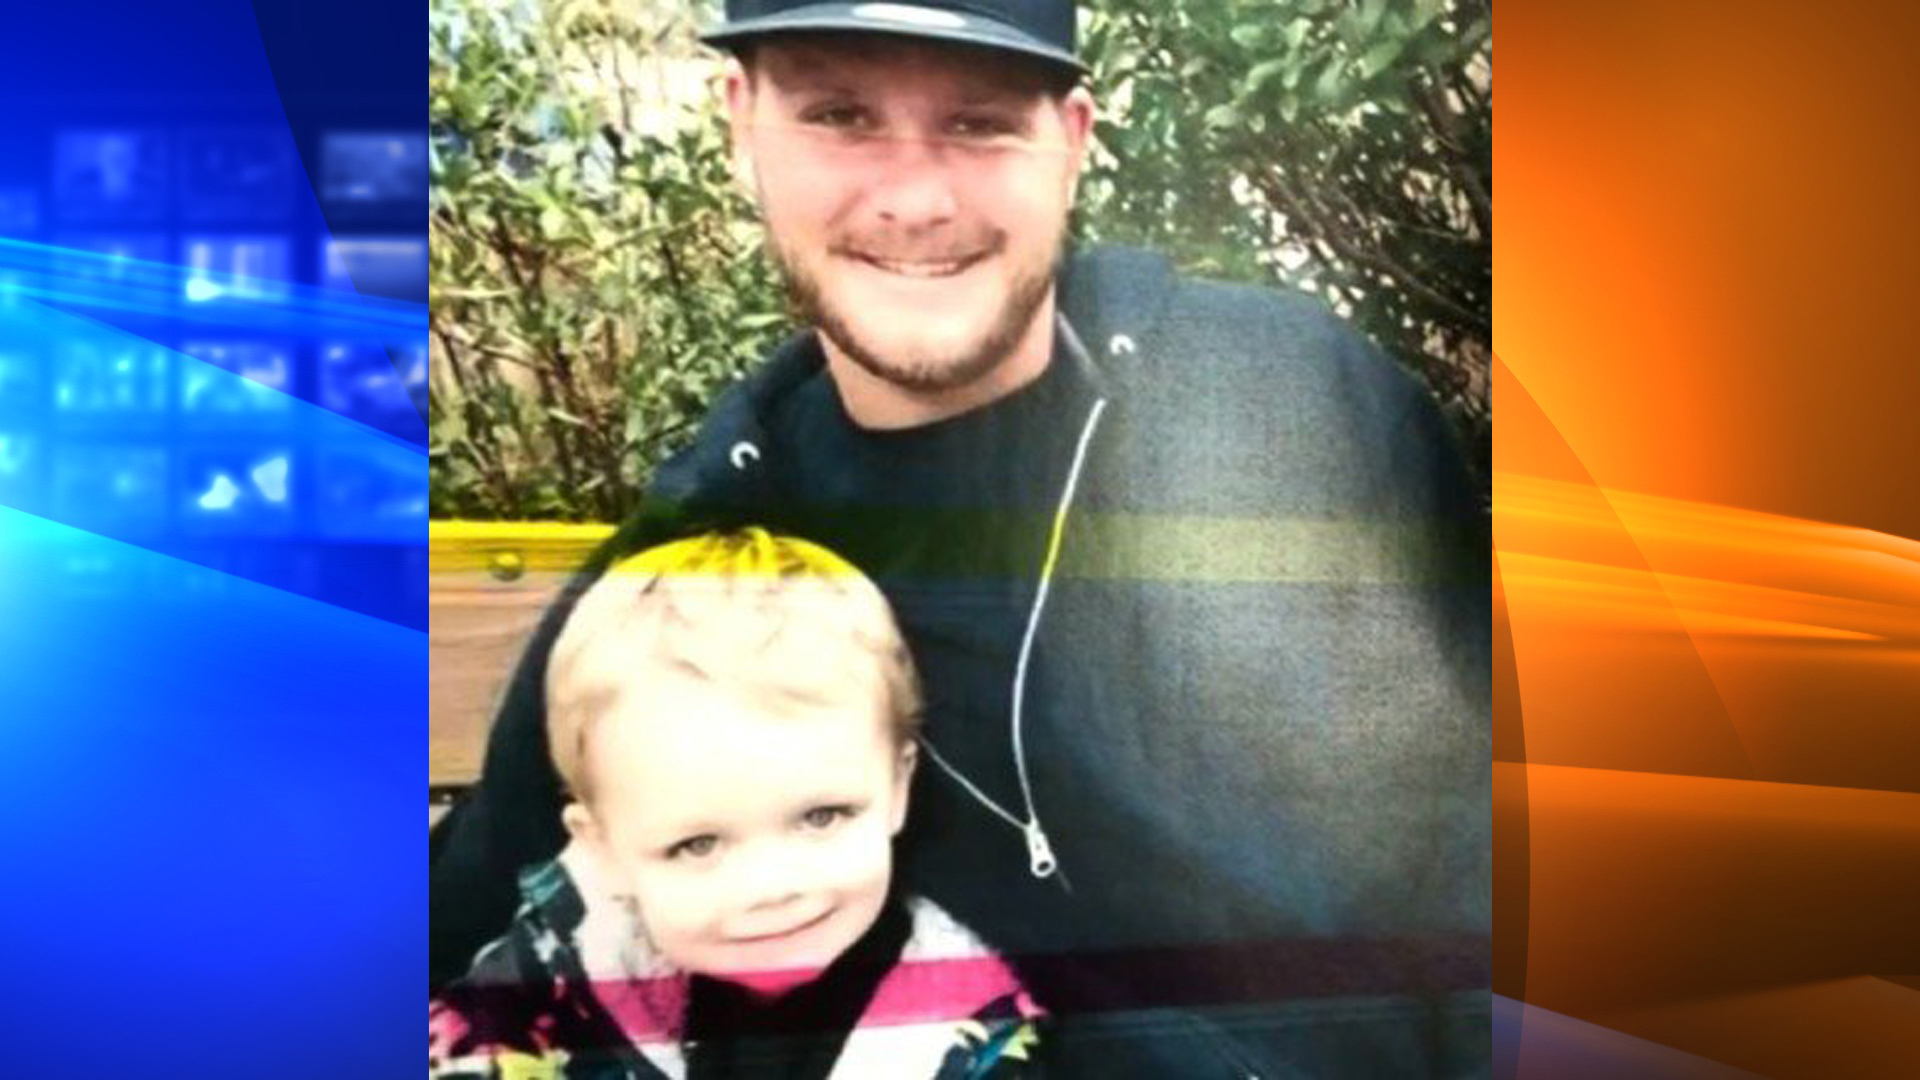 Kenneth White is seen in a photo released by the Genesee County Sheriff's Office.